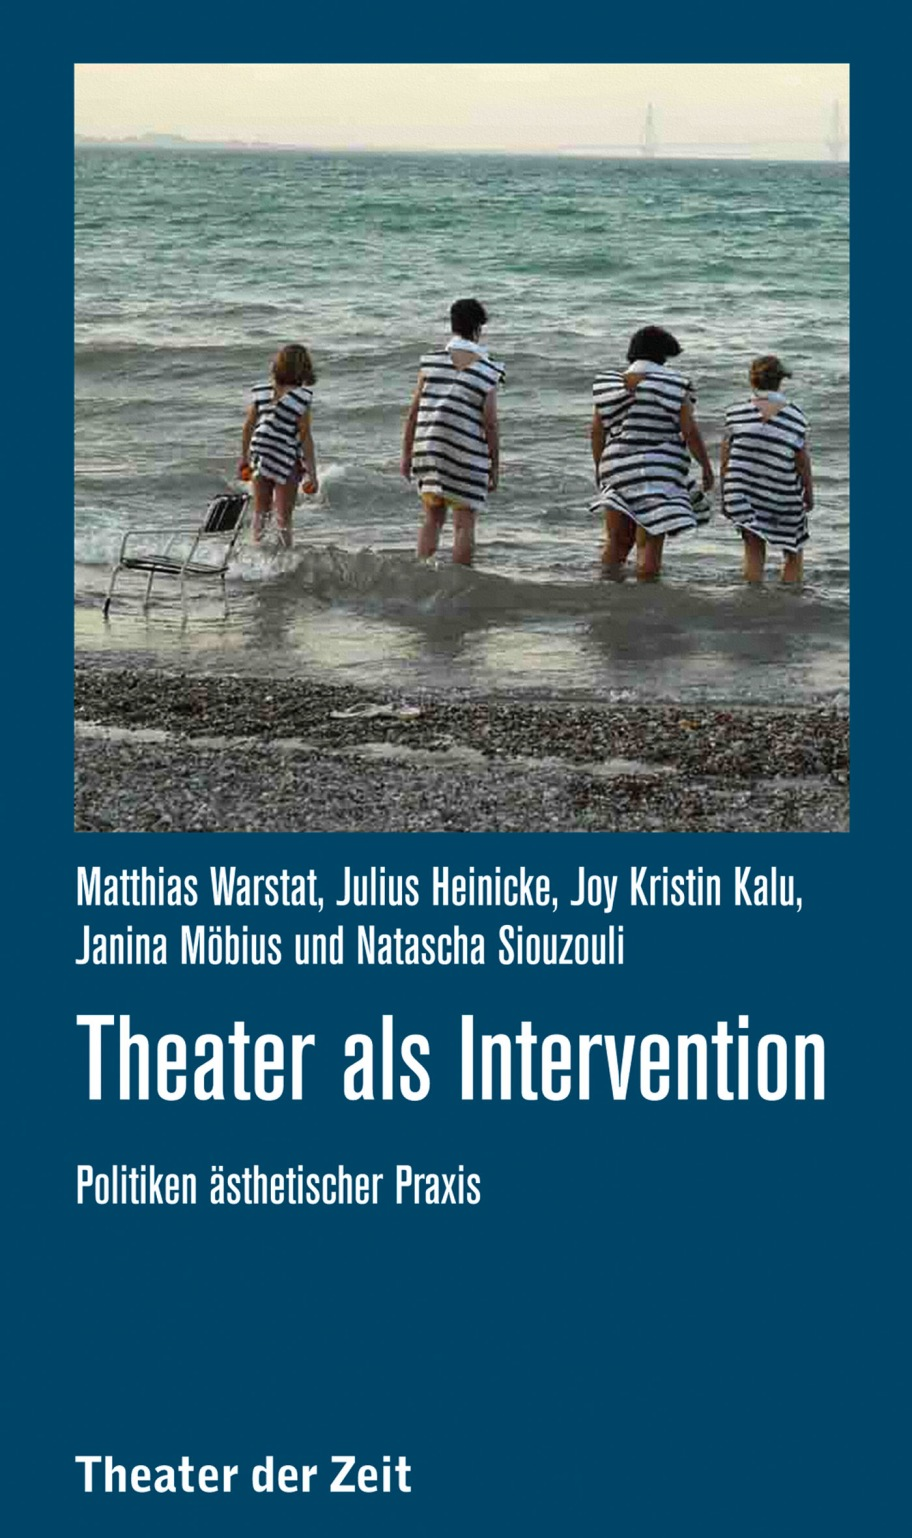 Theater als Intervention